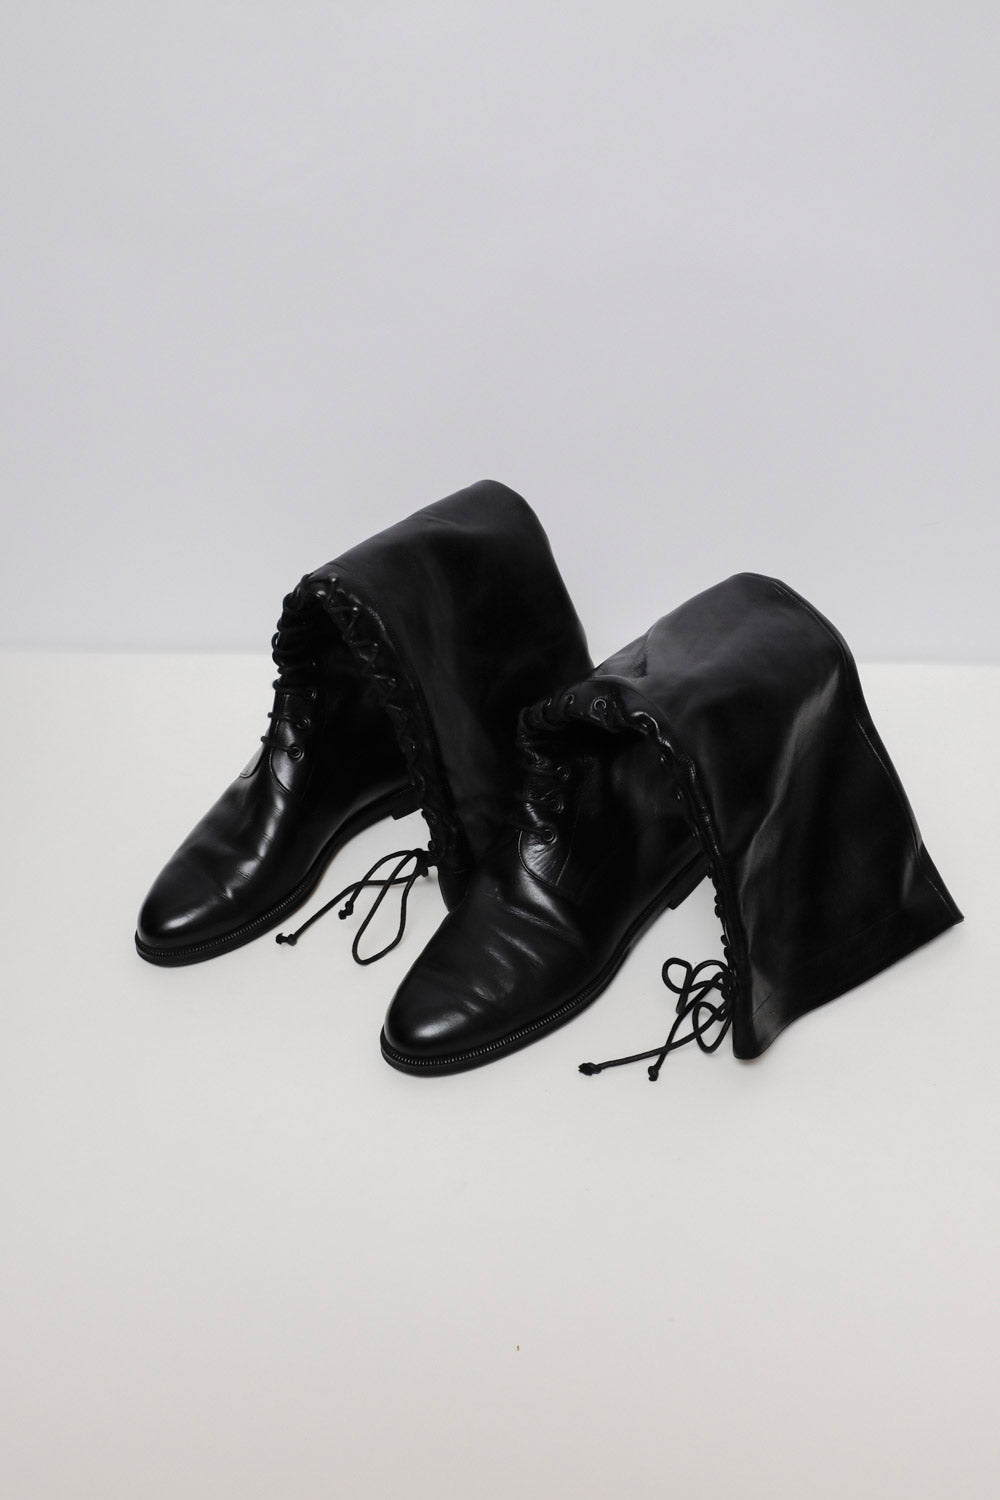 0018_THE BOOTS 41